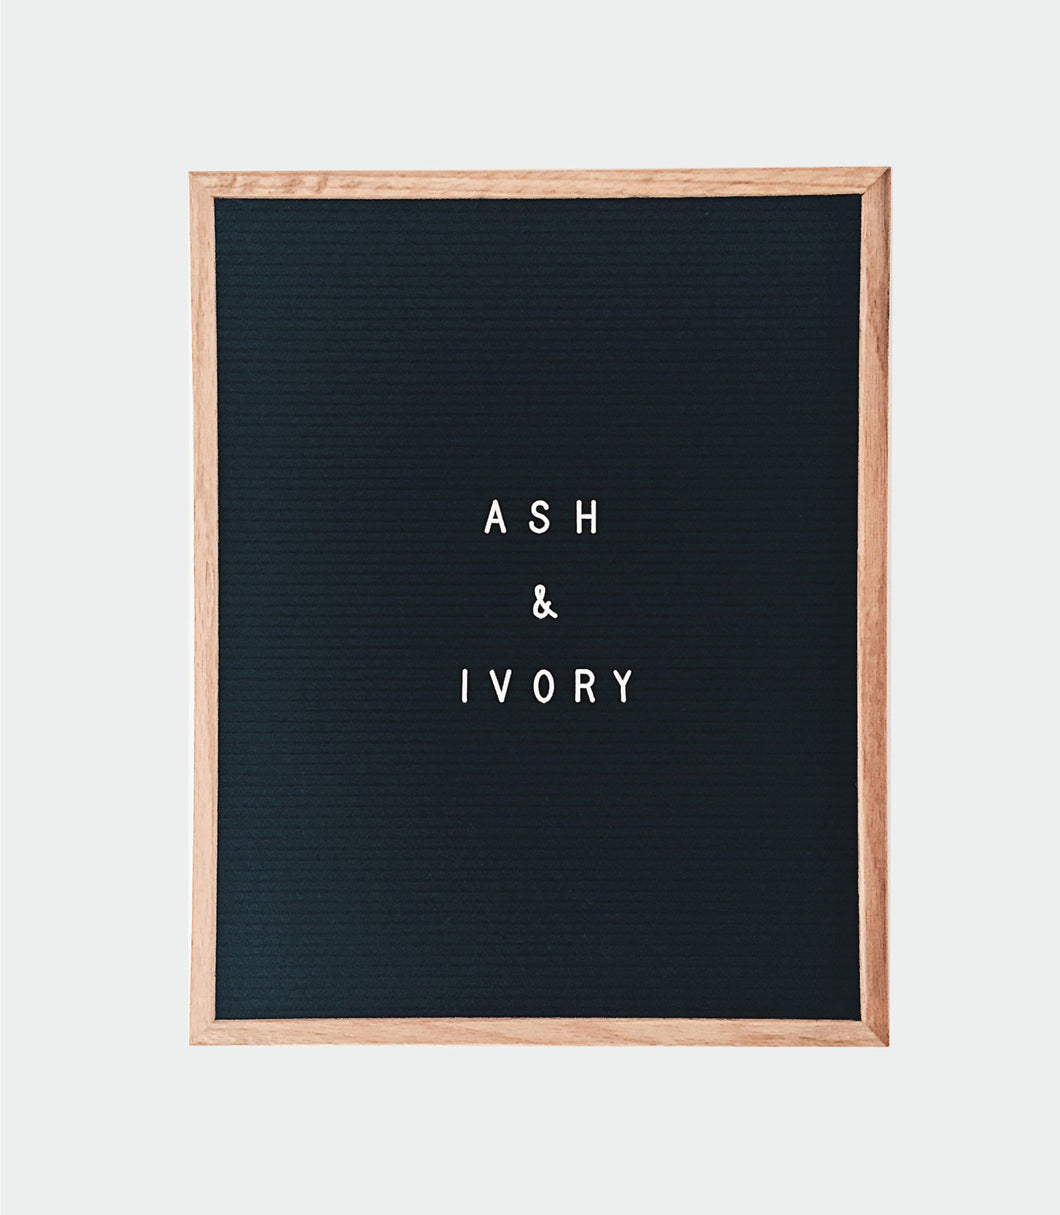 16x20 LETTER BOARD with 296 piece white letters